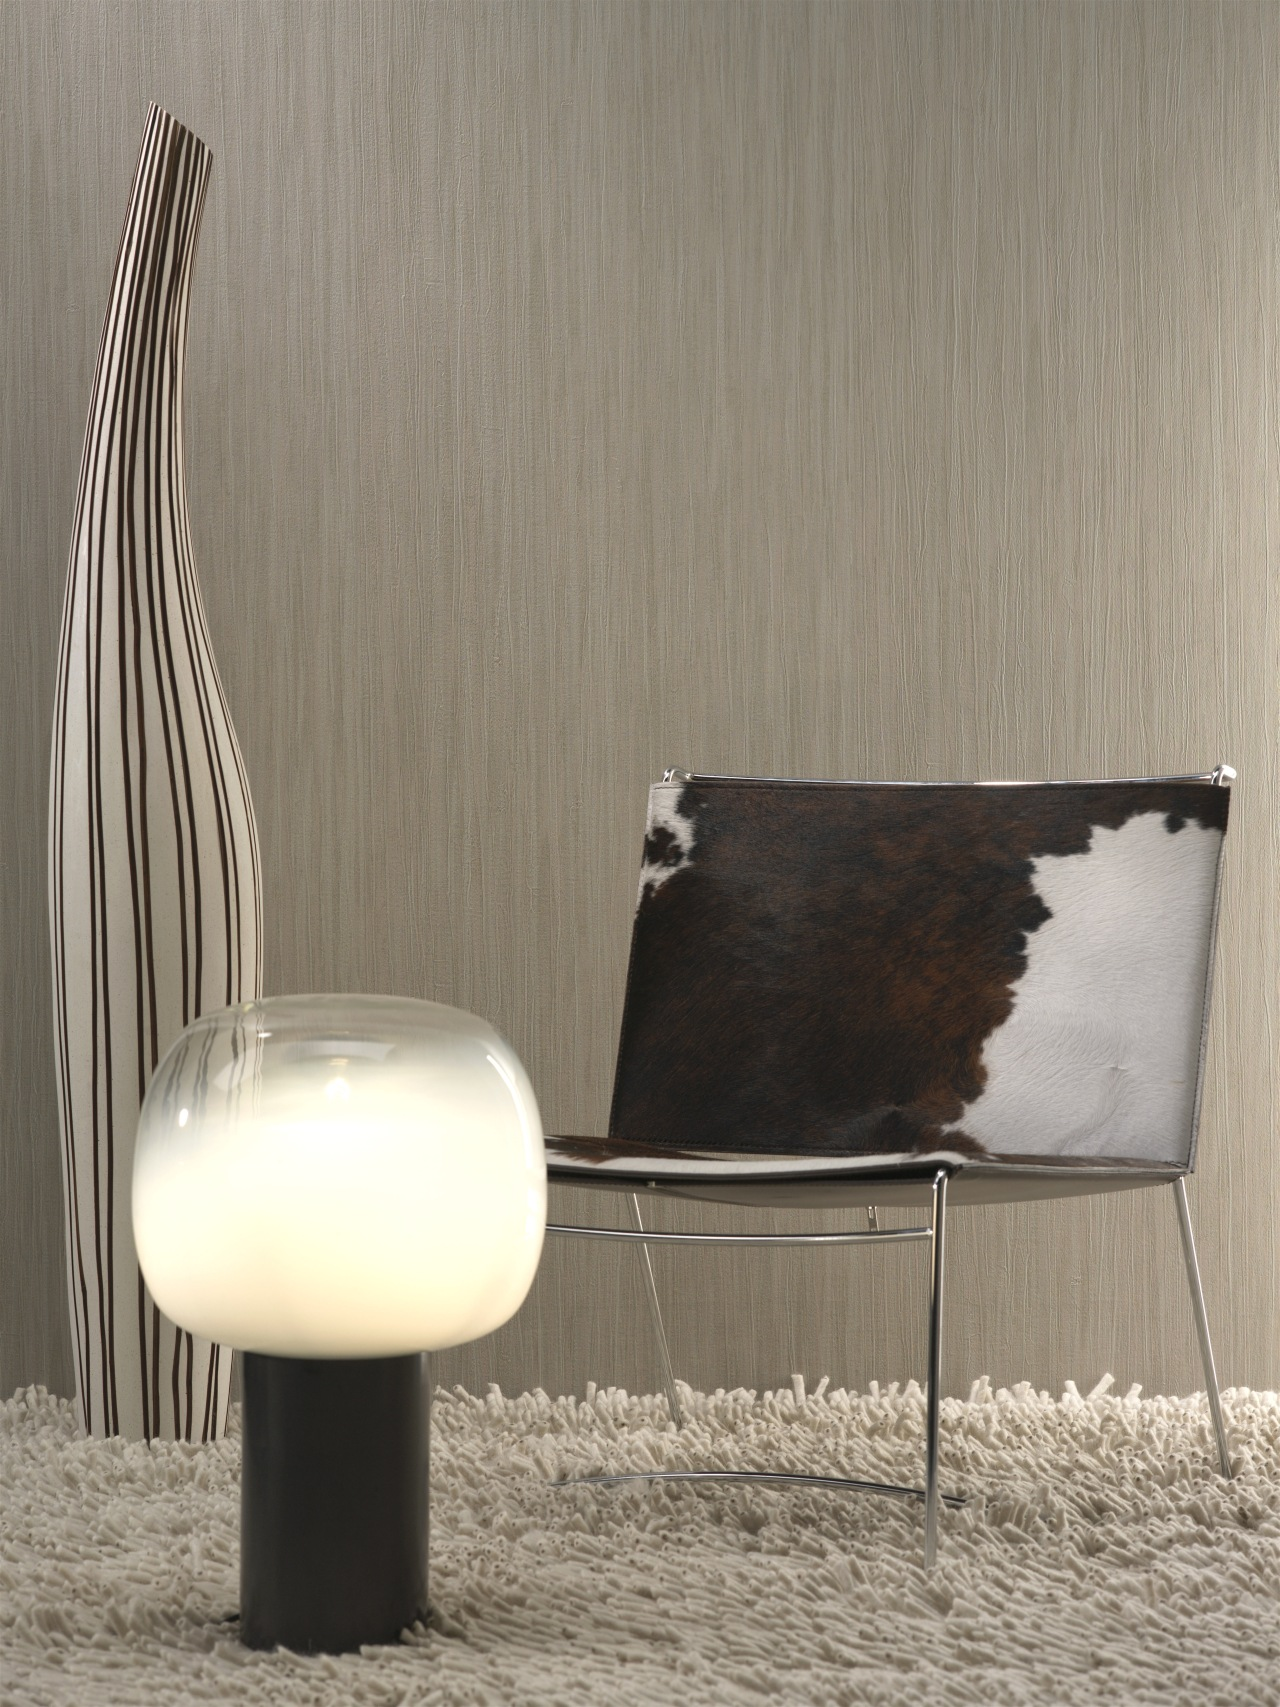 A view of some wallpaper from Vision Wallcoverings. chair, floor, furniture, interior design, lamp, light fixture, lighting, product design, table, gray